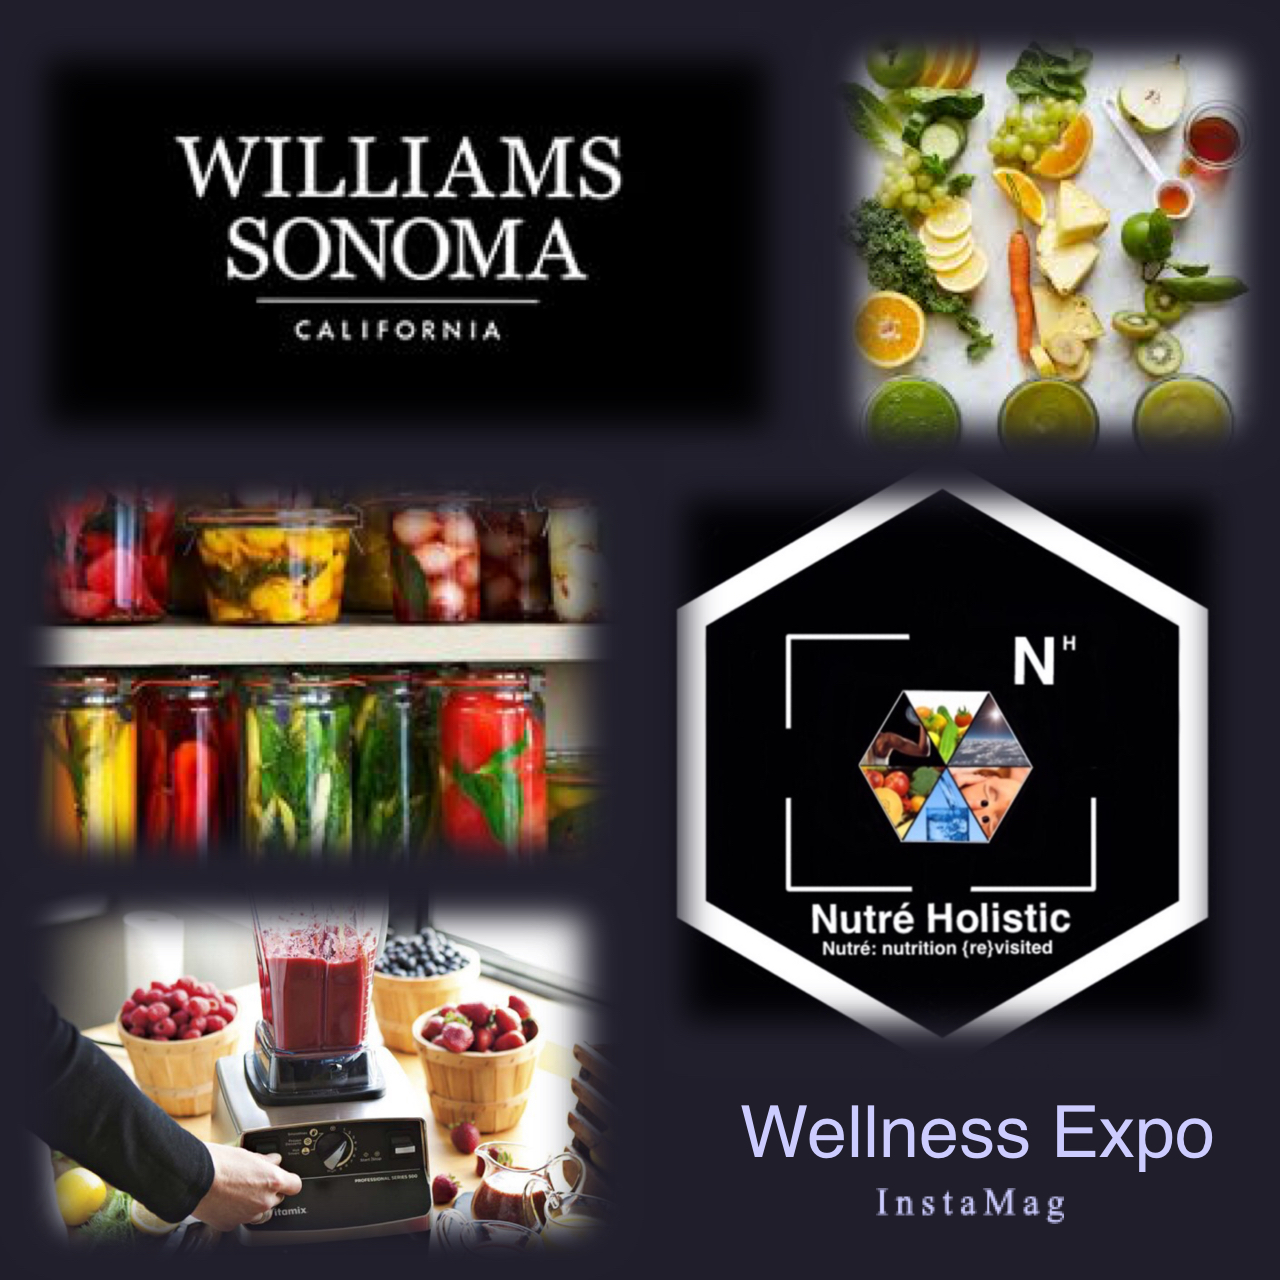 Williams Sonoma Wellness Expo Hosted By Nutré Holistic